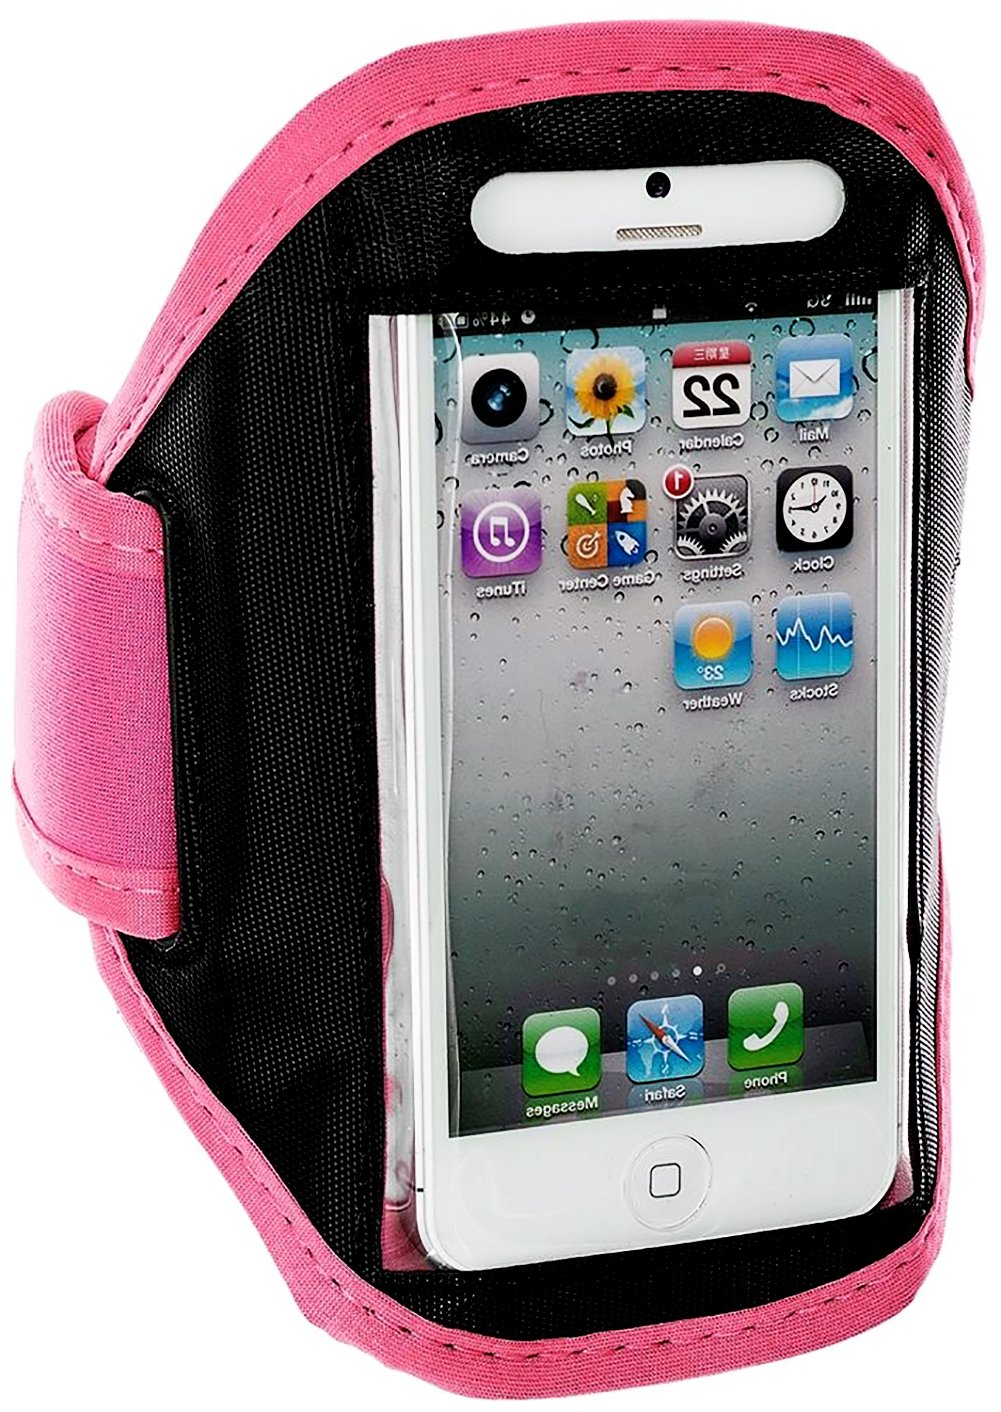 myLife Original Black and Peony Pink {Rain Resistant Velcro Secure Running Armband} Dual-Fit Jogging Arm Strap Holder for iPhone 5|5S|5C and iPod 5 (5G) 5th Generation by Apple All Ports Accessible waterproof bag pouch w armband neck strap for iphone 5 5c black